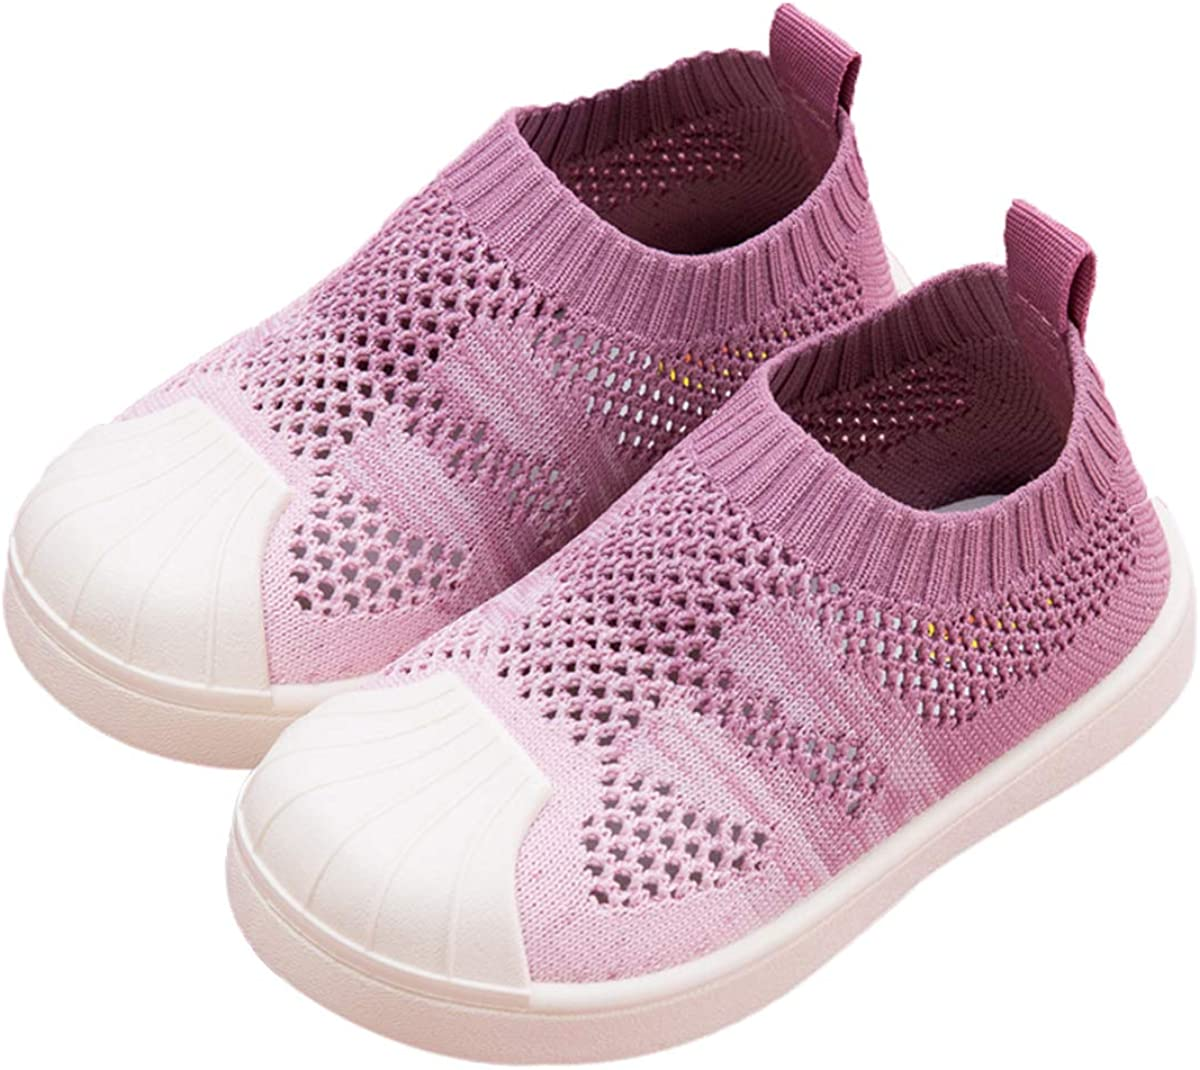 DEBAIJIA Toddler Shoes 1-7T Baby First-Walking Kid Shoes Gradual Change Color Soft Sole Non Slip Mesh Lightweight PVC Material Slip-on